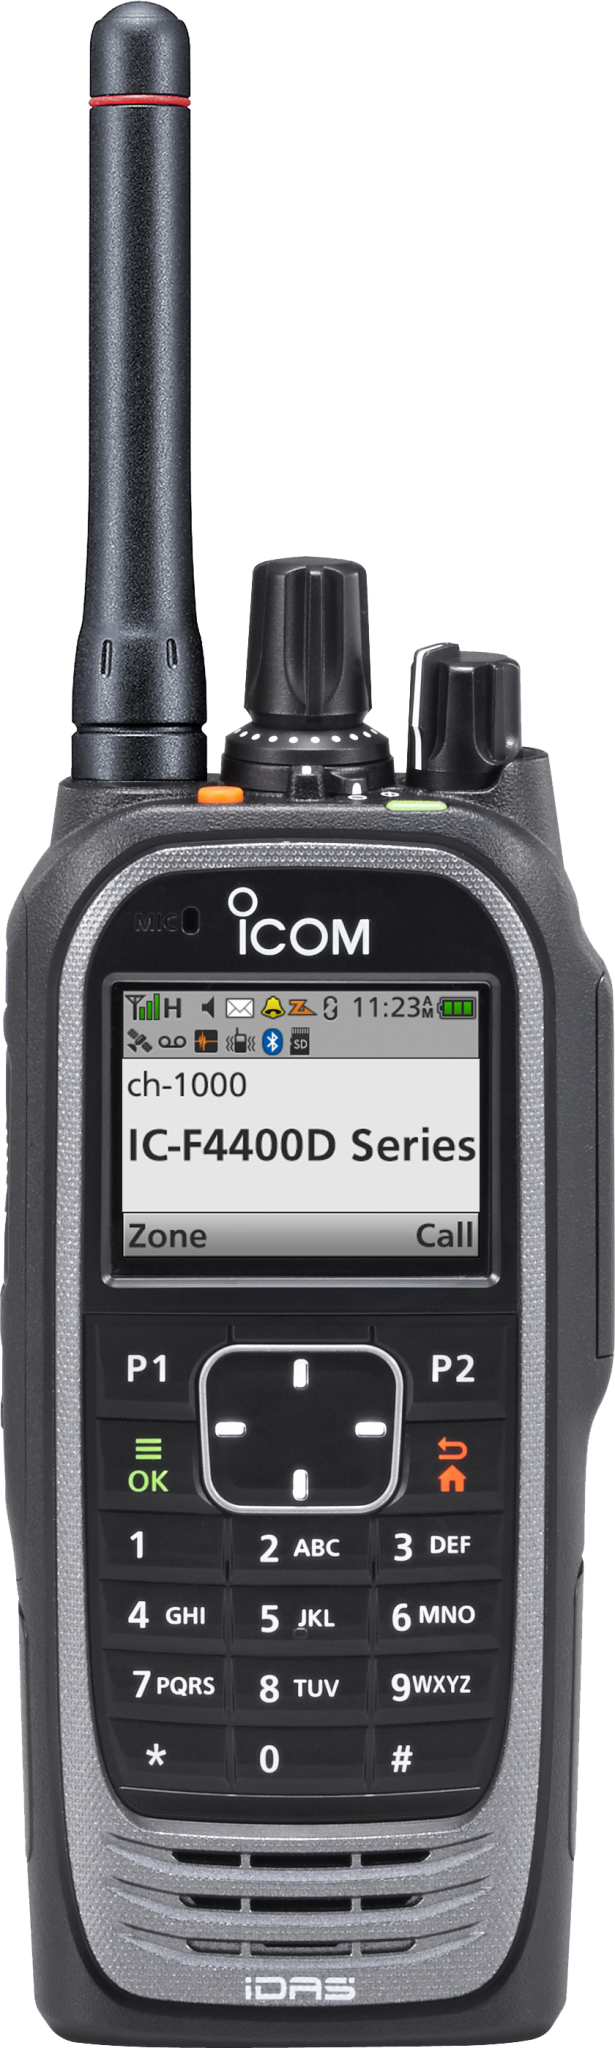 Icom IC-F4400DT featured image